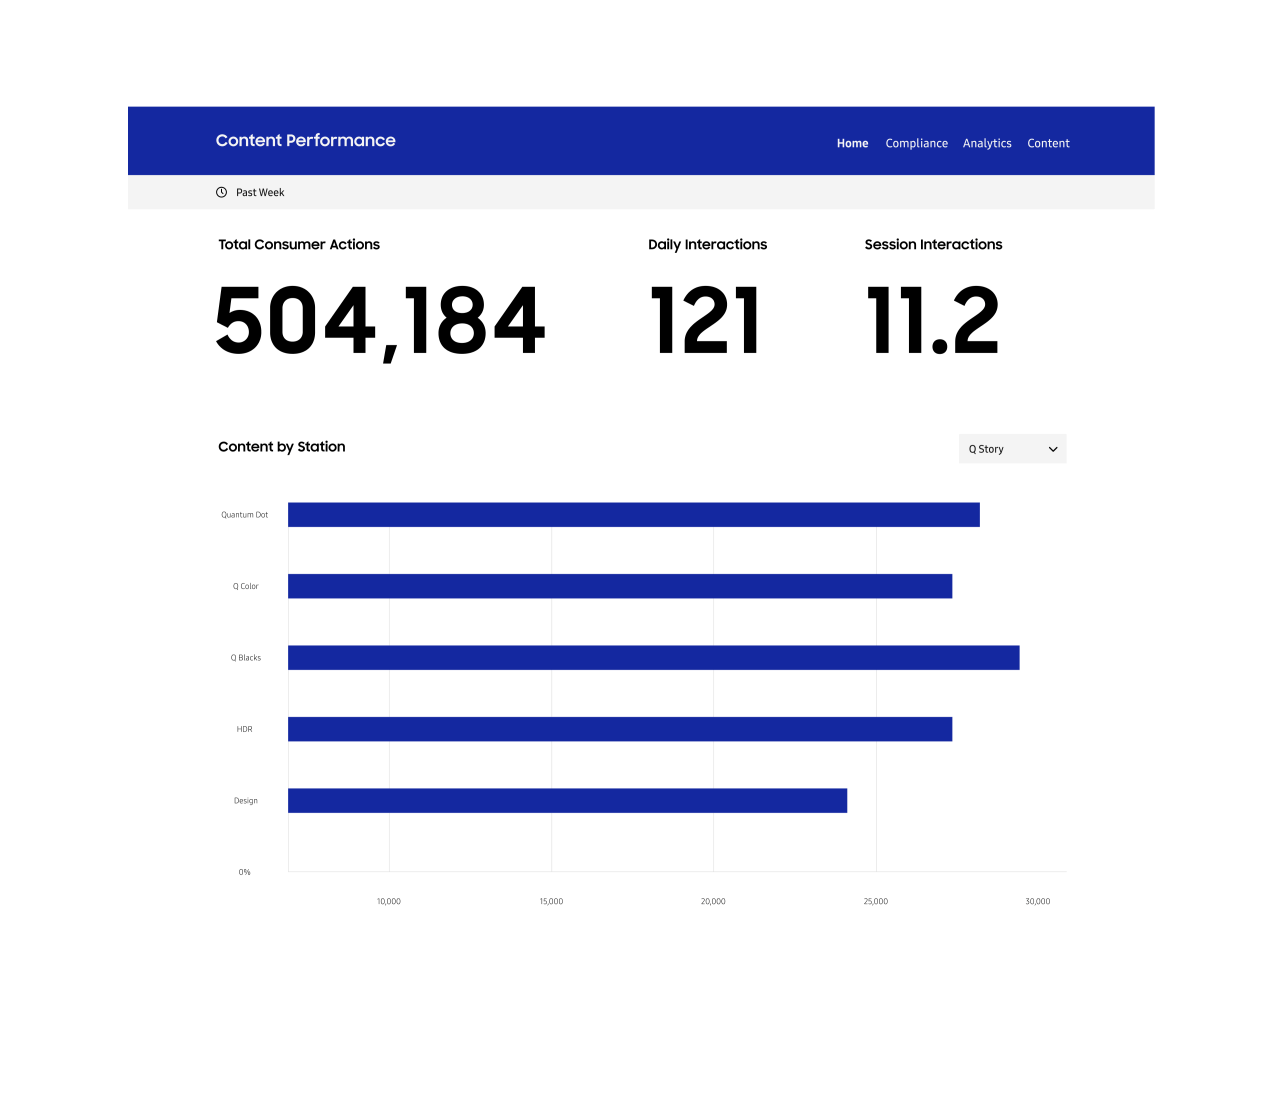 dashboard screen showing content performance